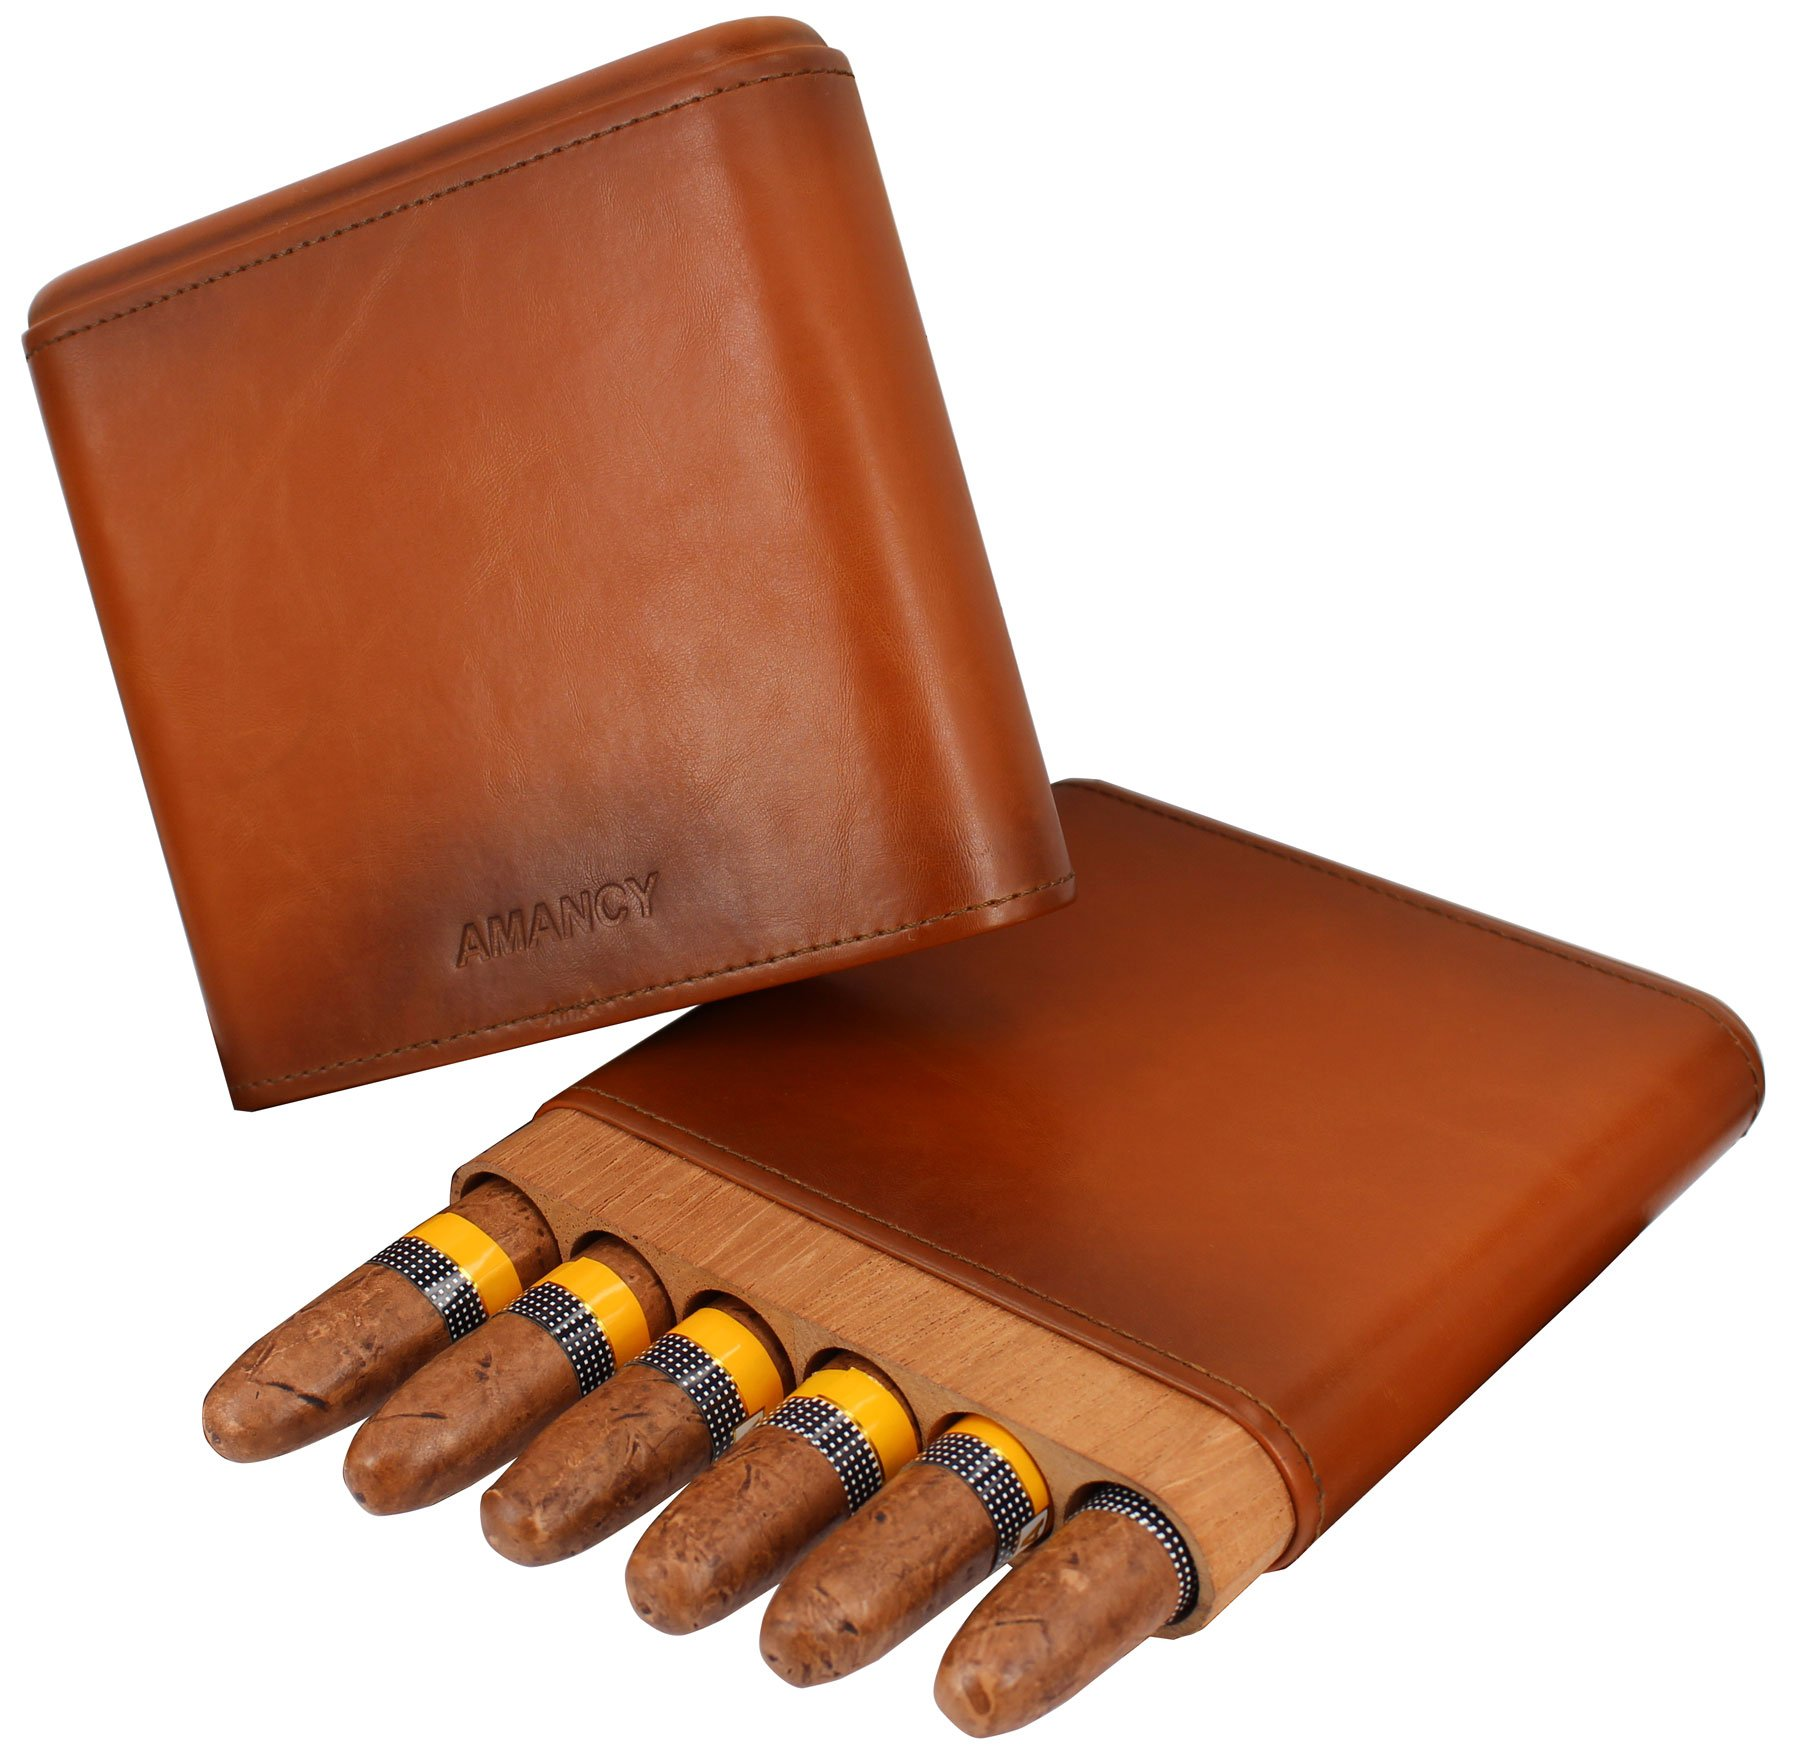 AMANCY Beautiful 6- Fingers Handy Brown Leather Cigar Case, Travel Cigar Humidor with Cedar Wood Lined